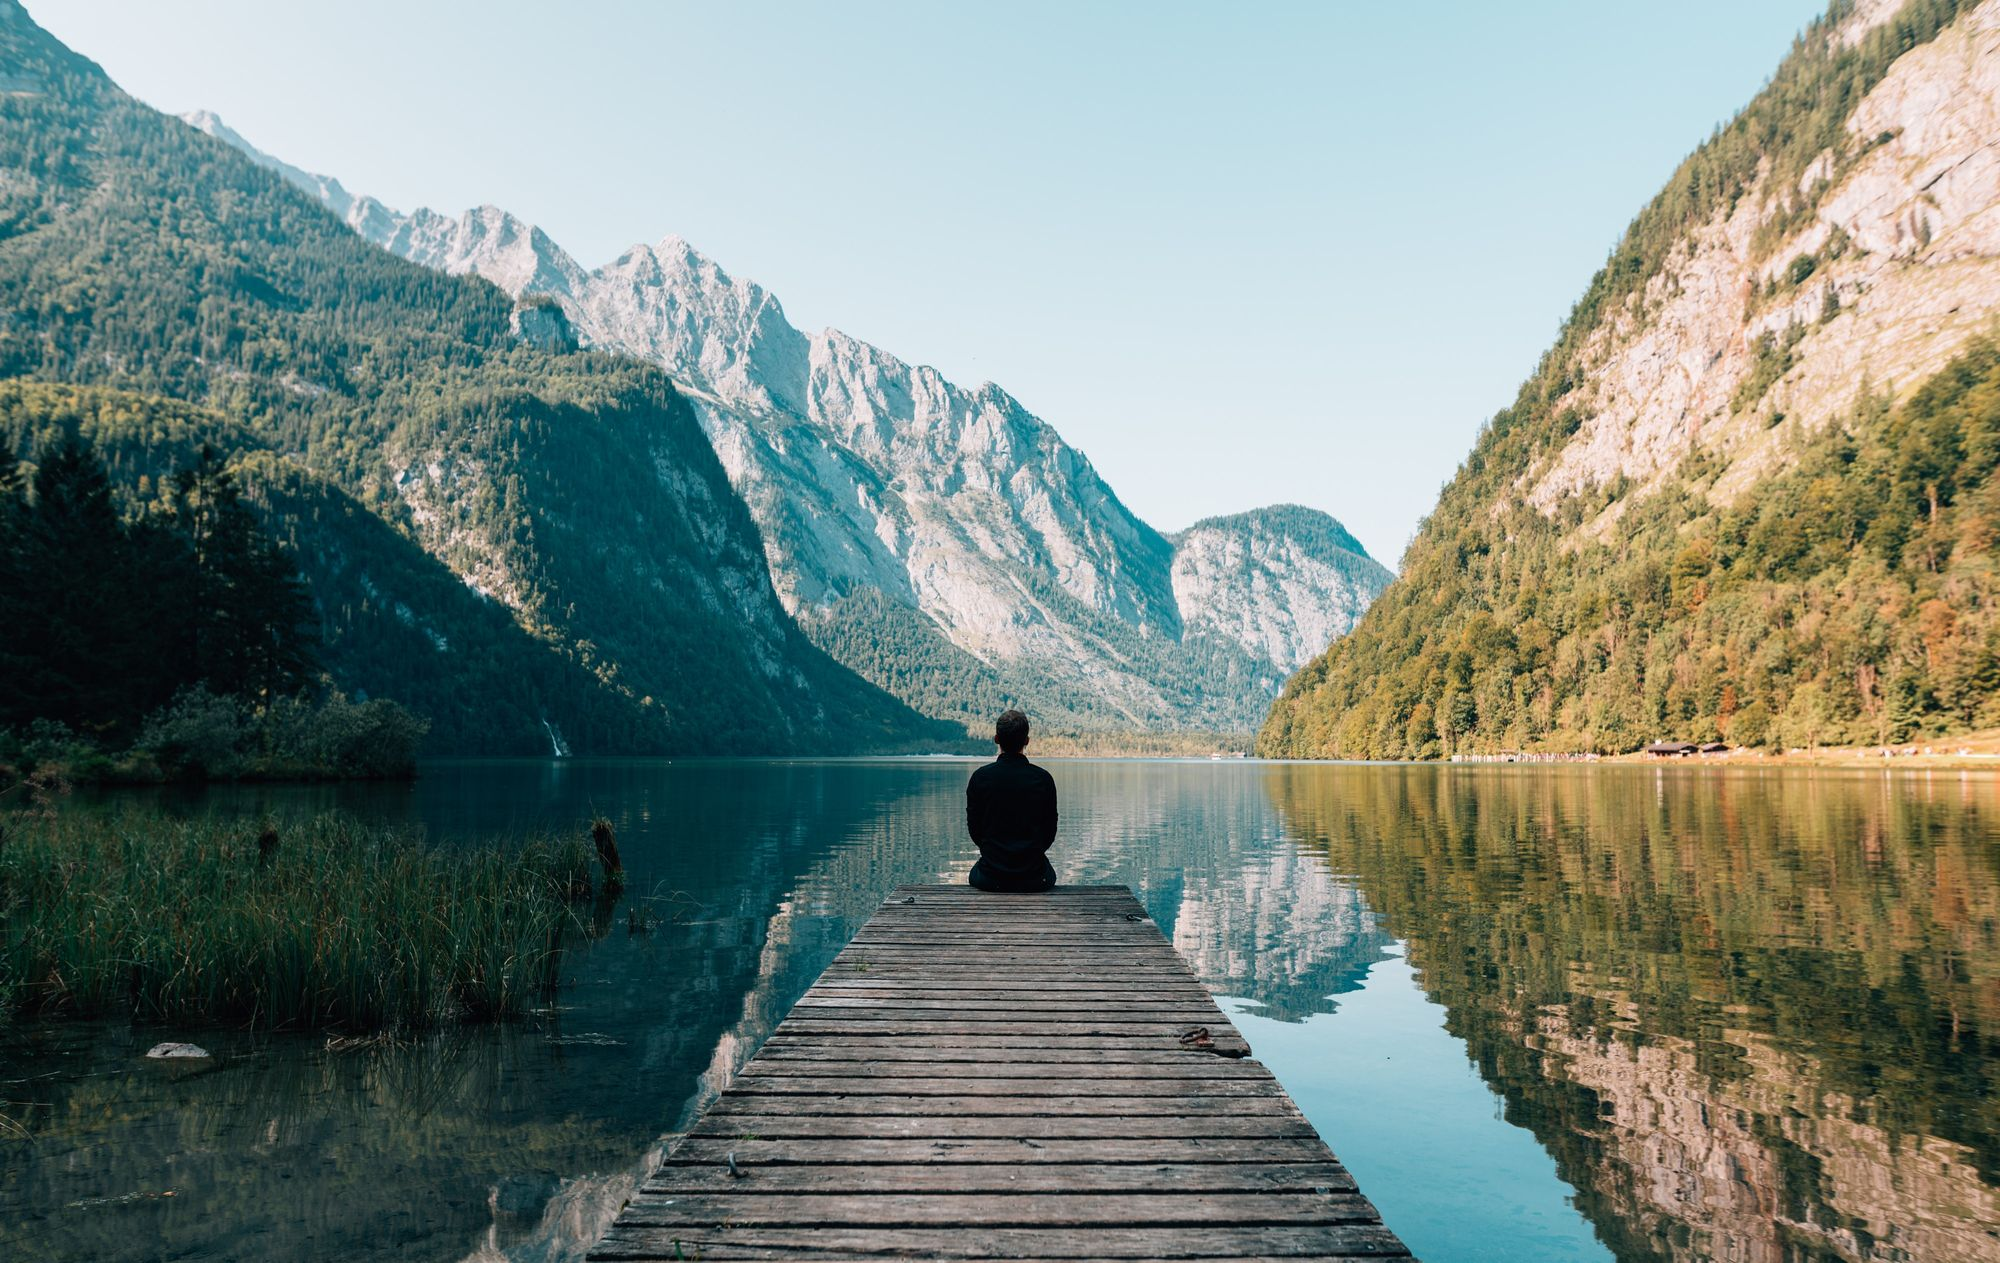 Man sitting in front of mountains and lakes